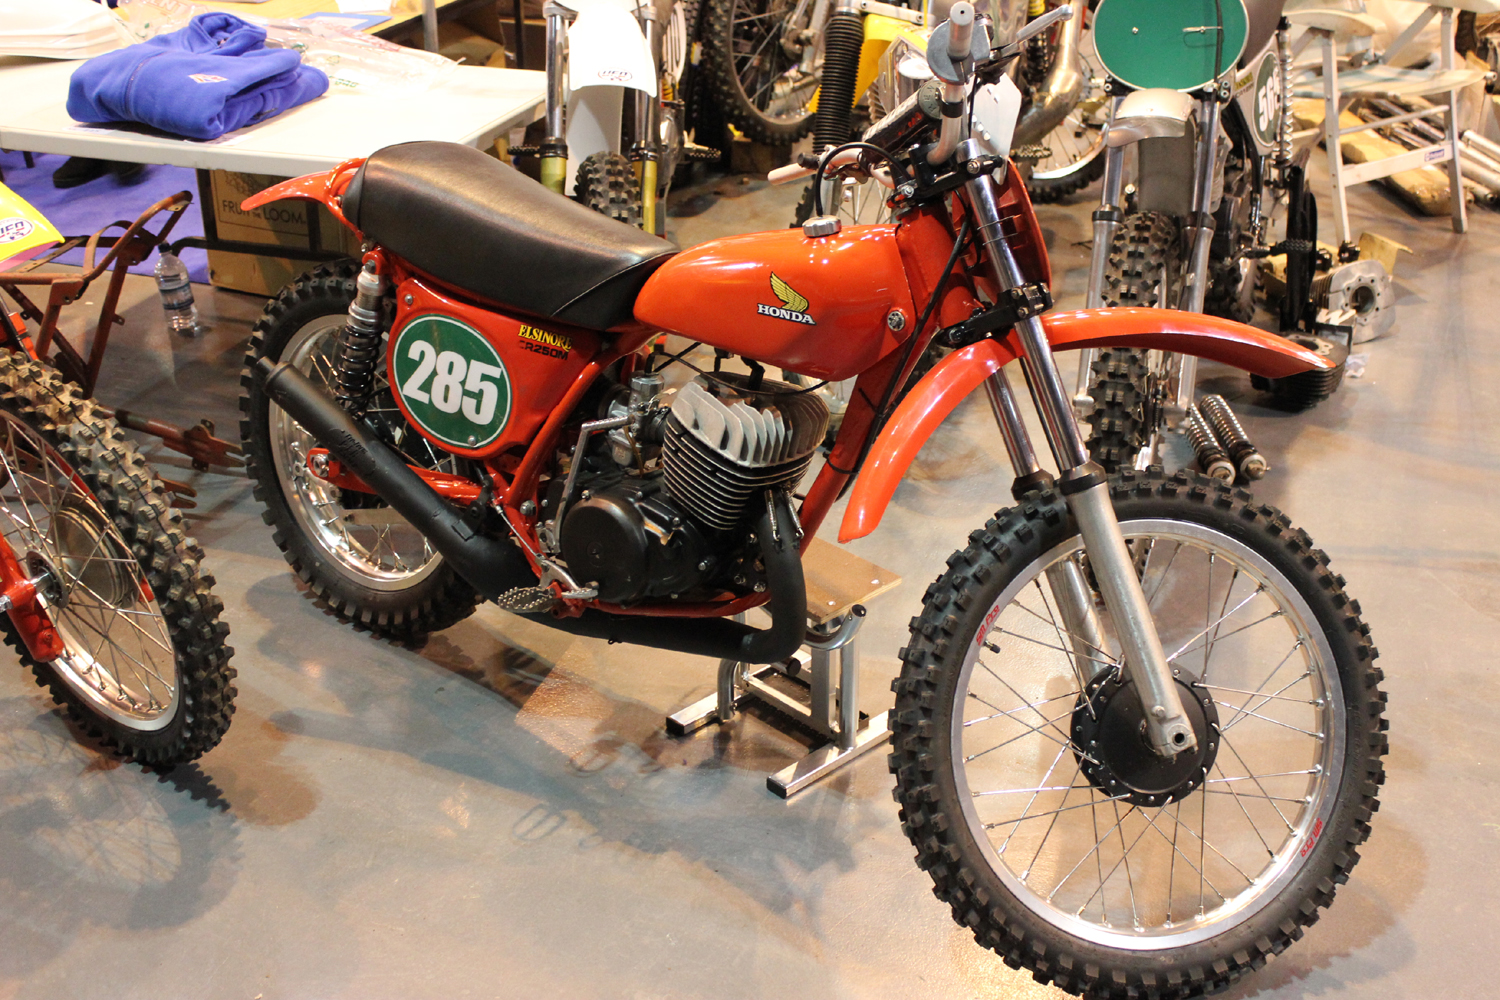 classicdirtbikerider.com-photo by Mr J-2015 Telford classic dirt bike show-HONDA CR250M ELSINORE TWINSHOCK